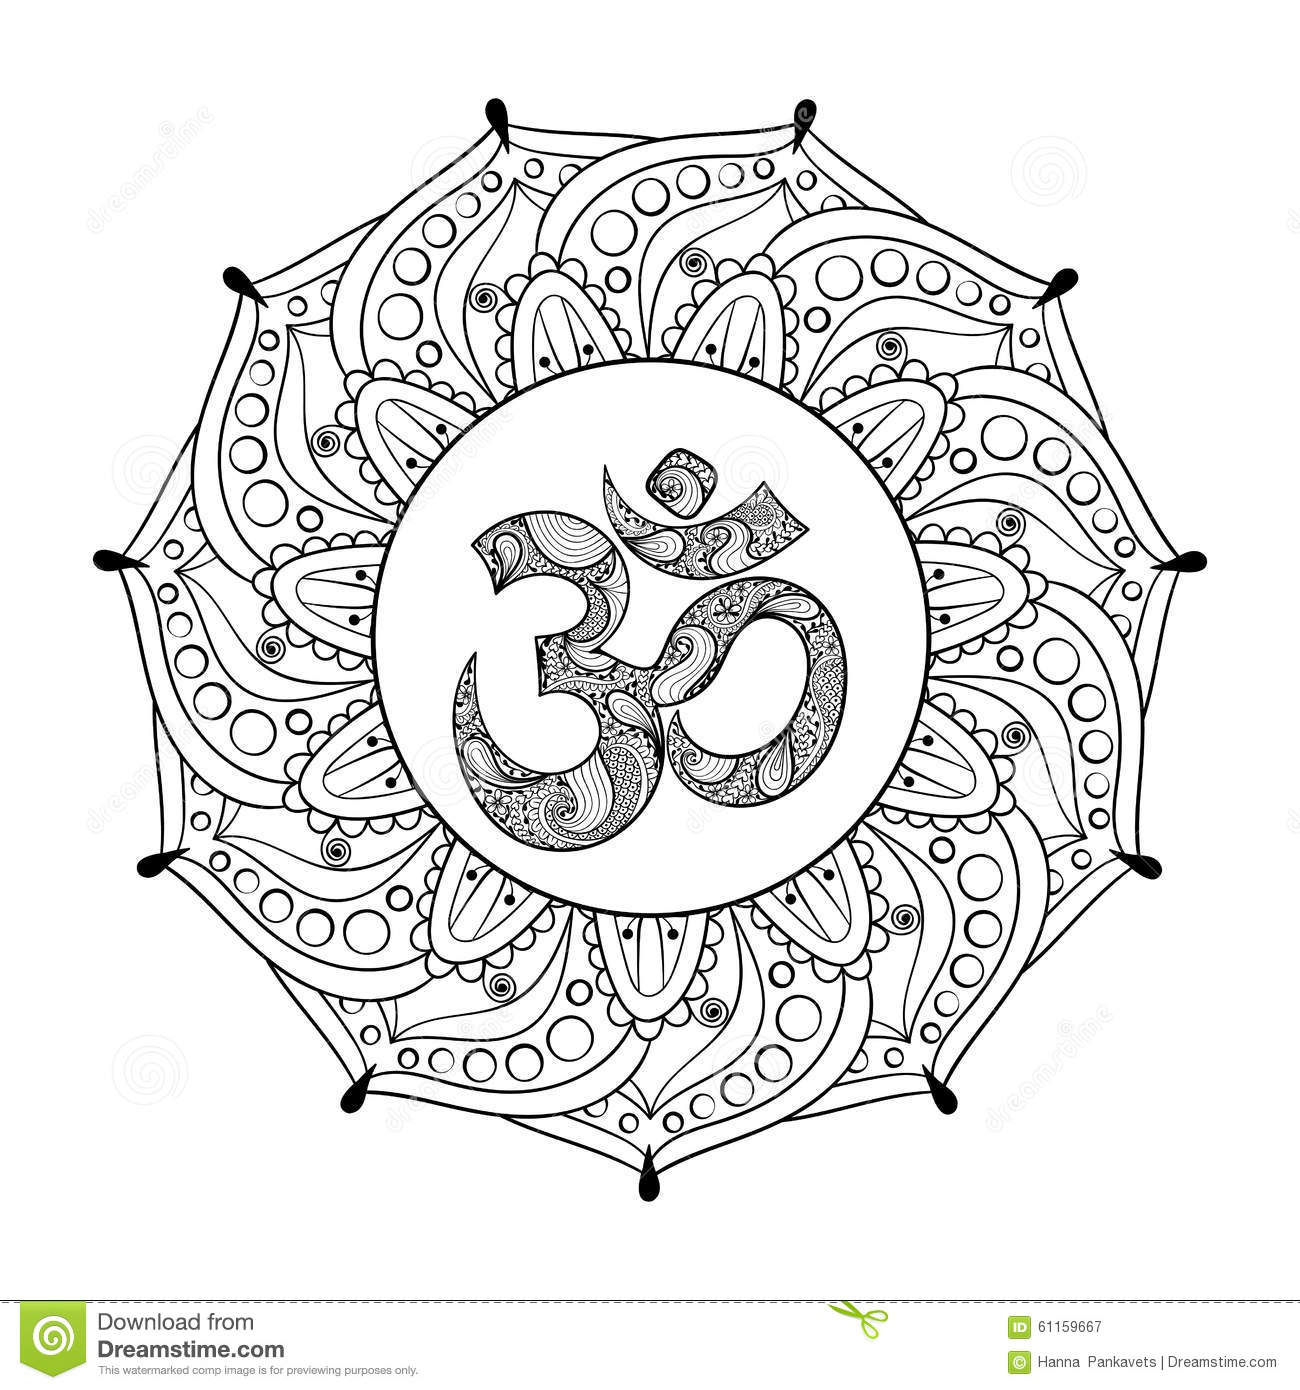 Gaelic symbols their meanings images symbol and sign ideas knots and their meanings celtic knots and their meanings buycottarizona buycottarizona